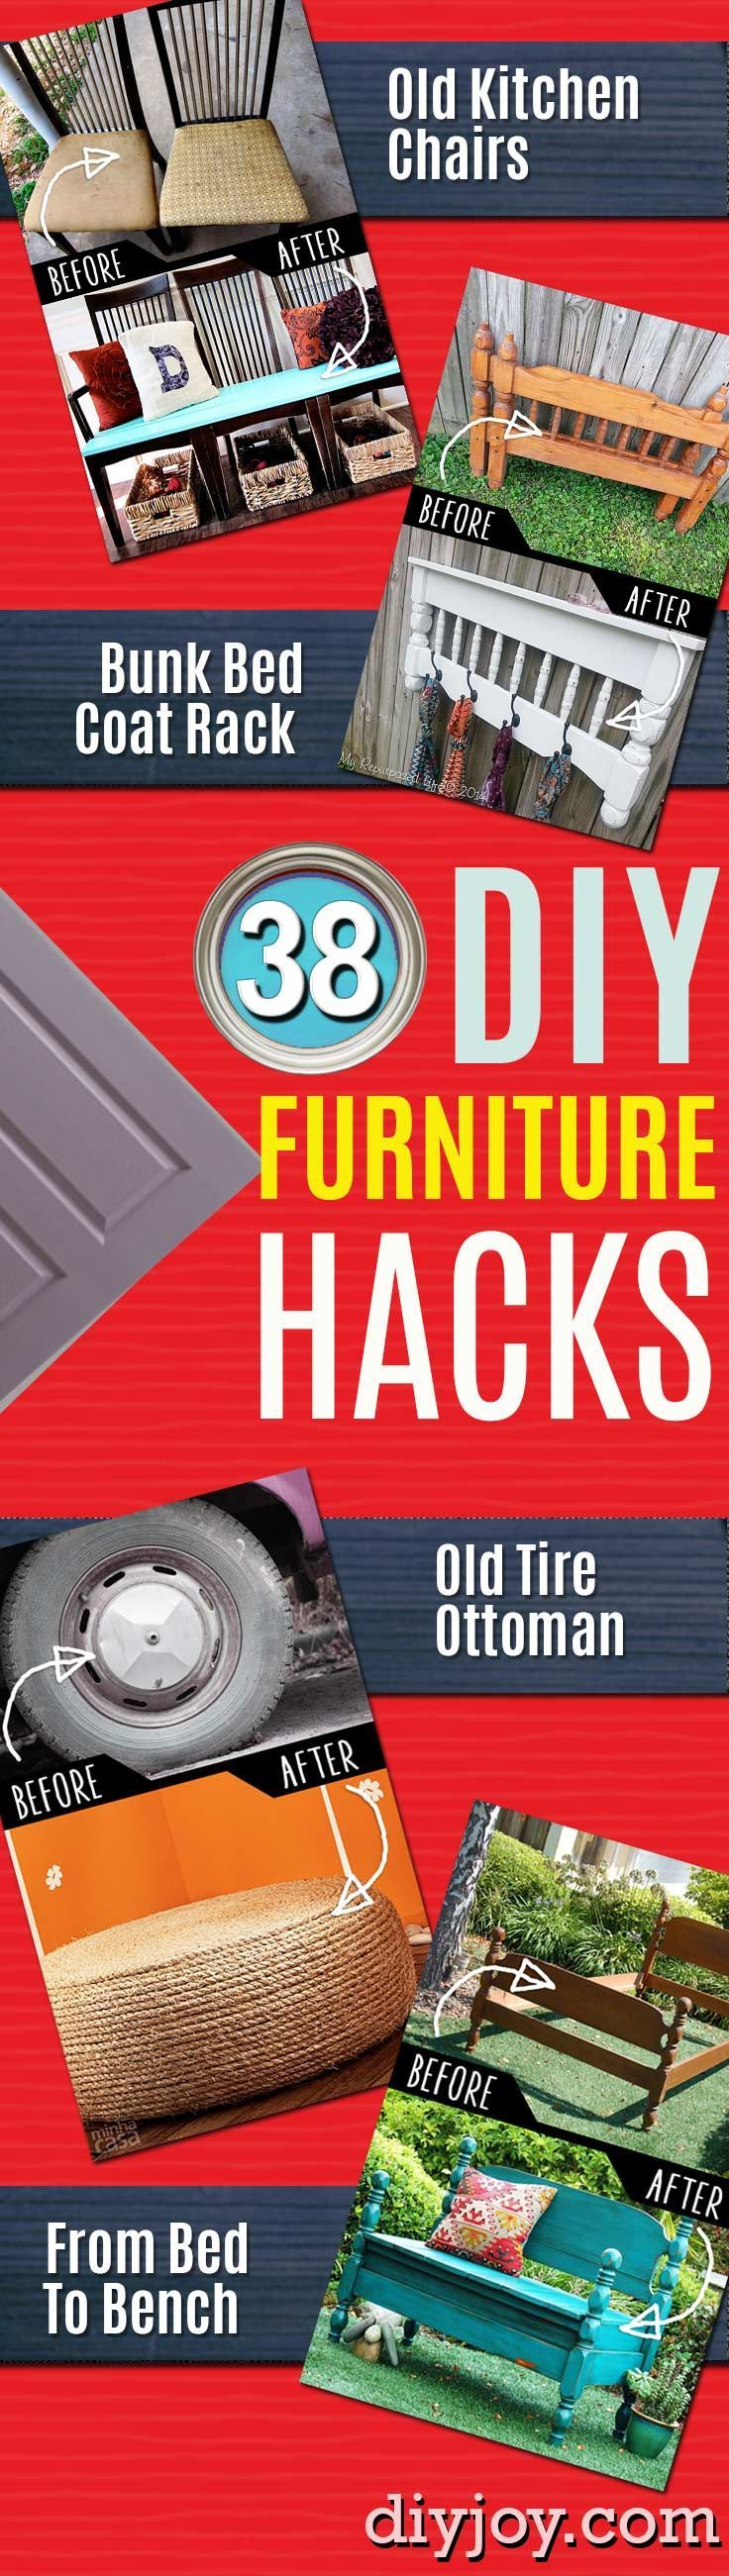 DIY Furniture Hacks | Cool Ideas for Creative Do It Yourself Furniture Made From...